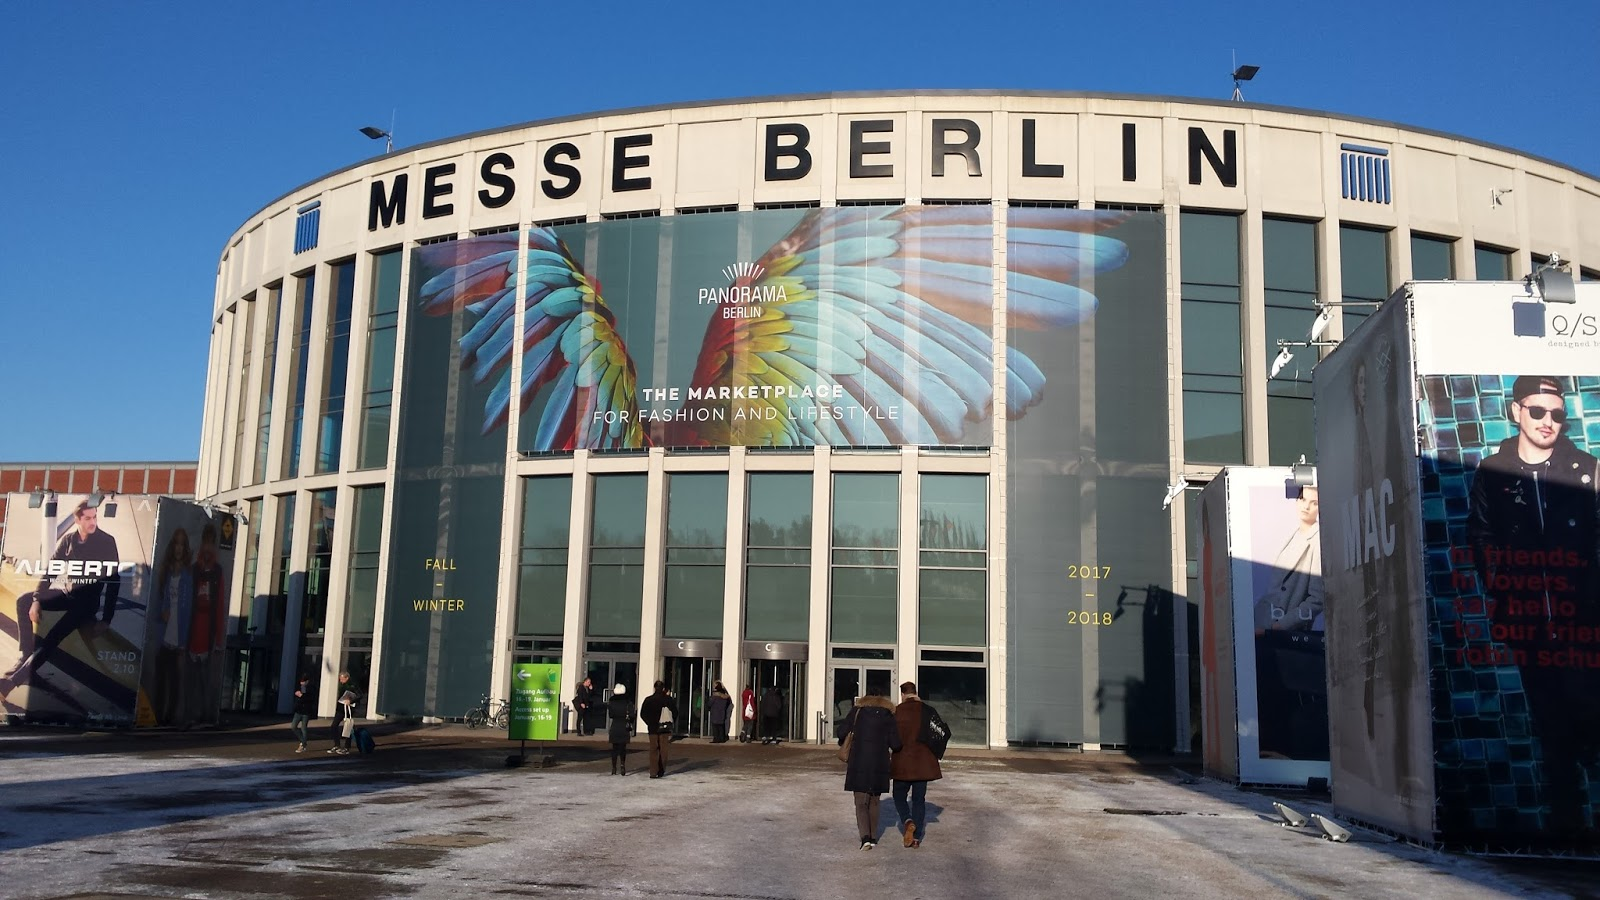 Messe Berlin, Showroom Panorama Berlin 2017, Berlin Fashion Week